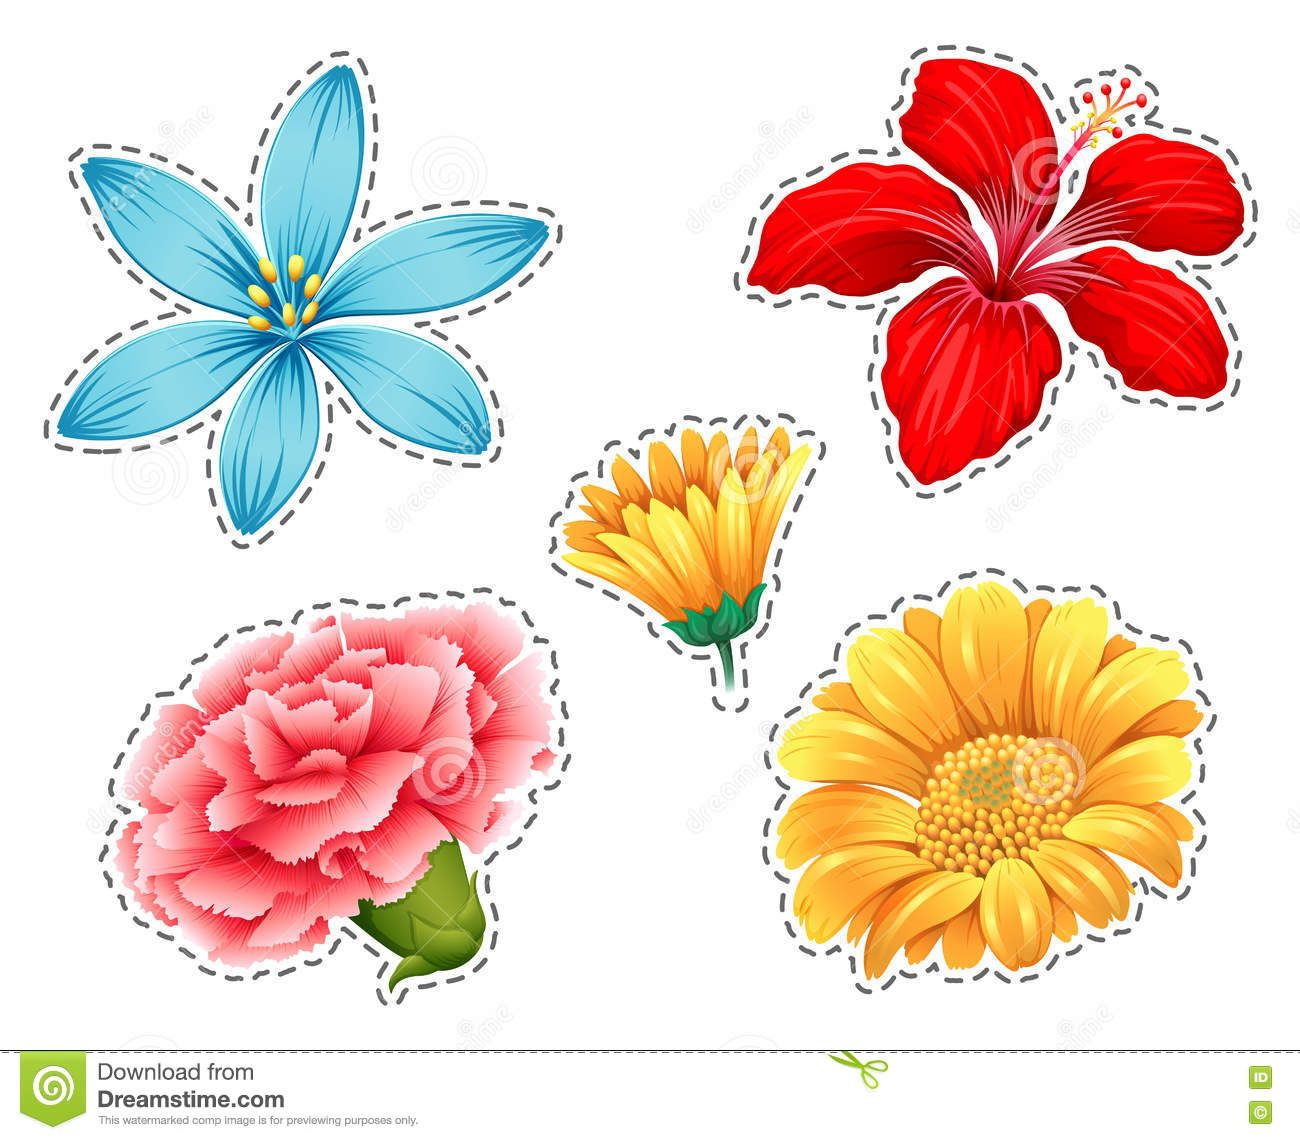 types of flowers types of flowers az common types of